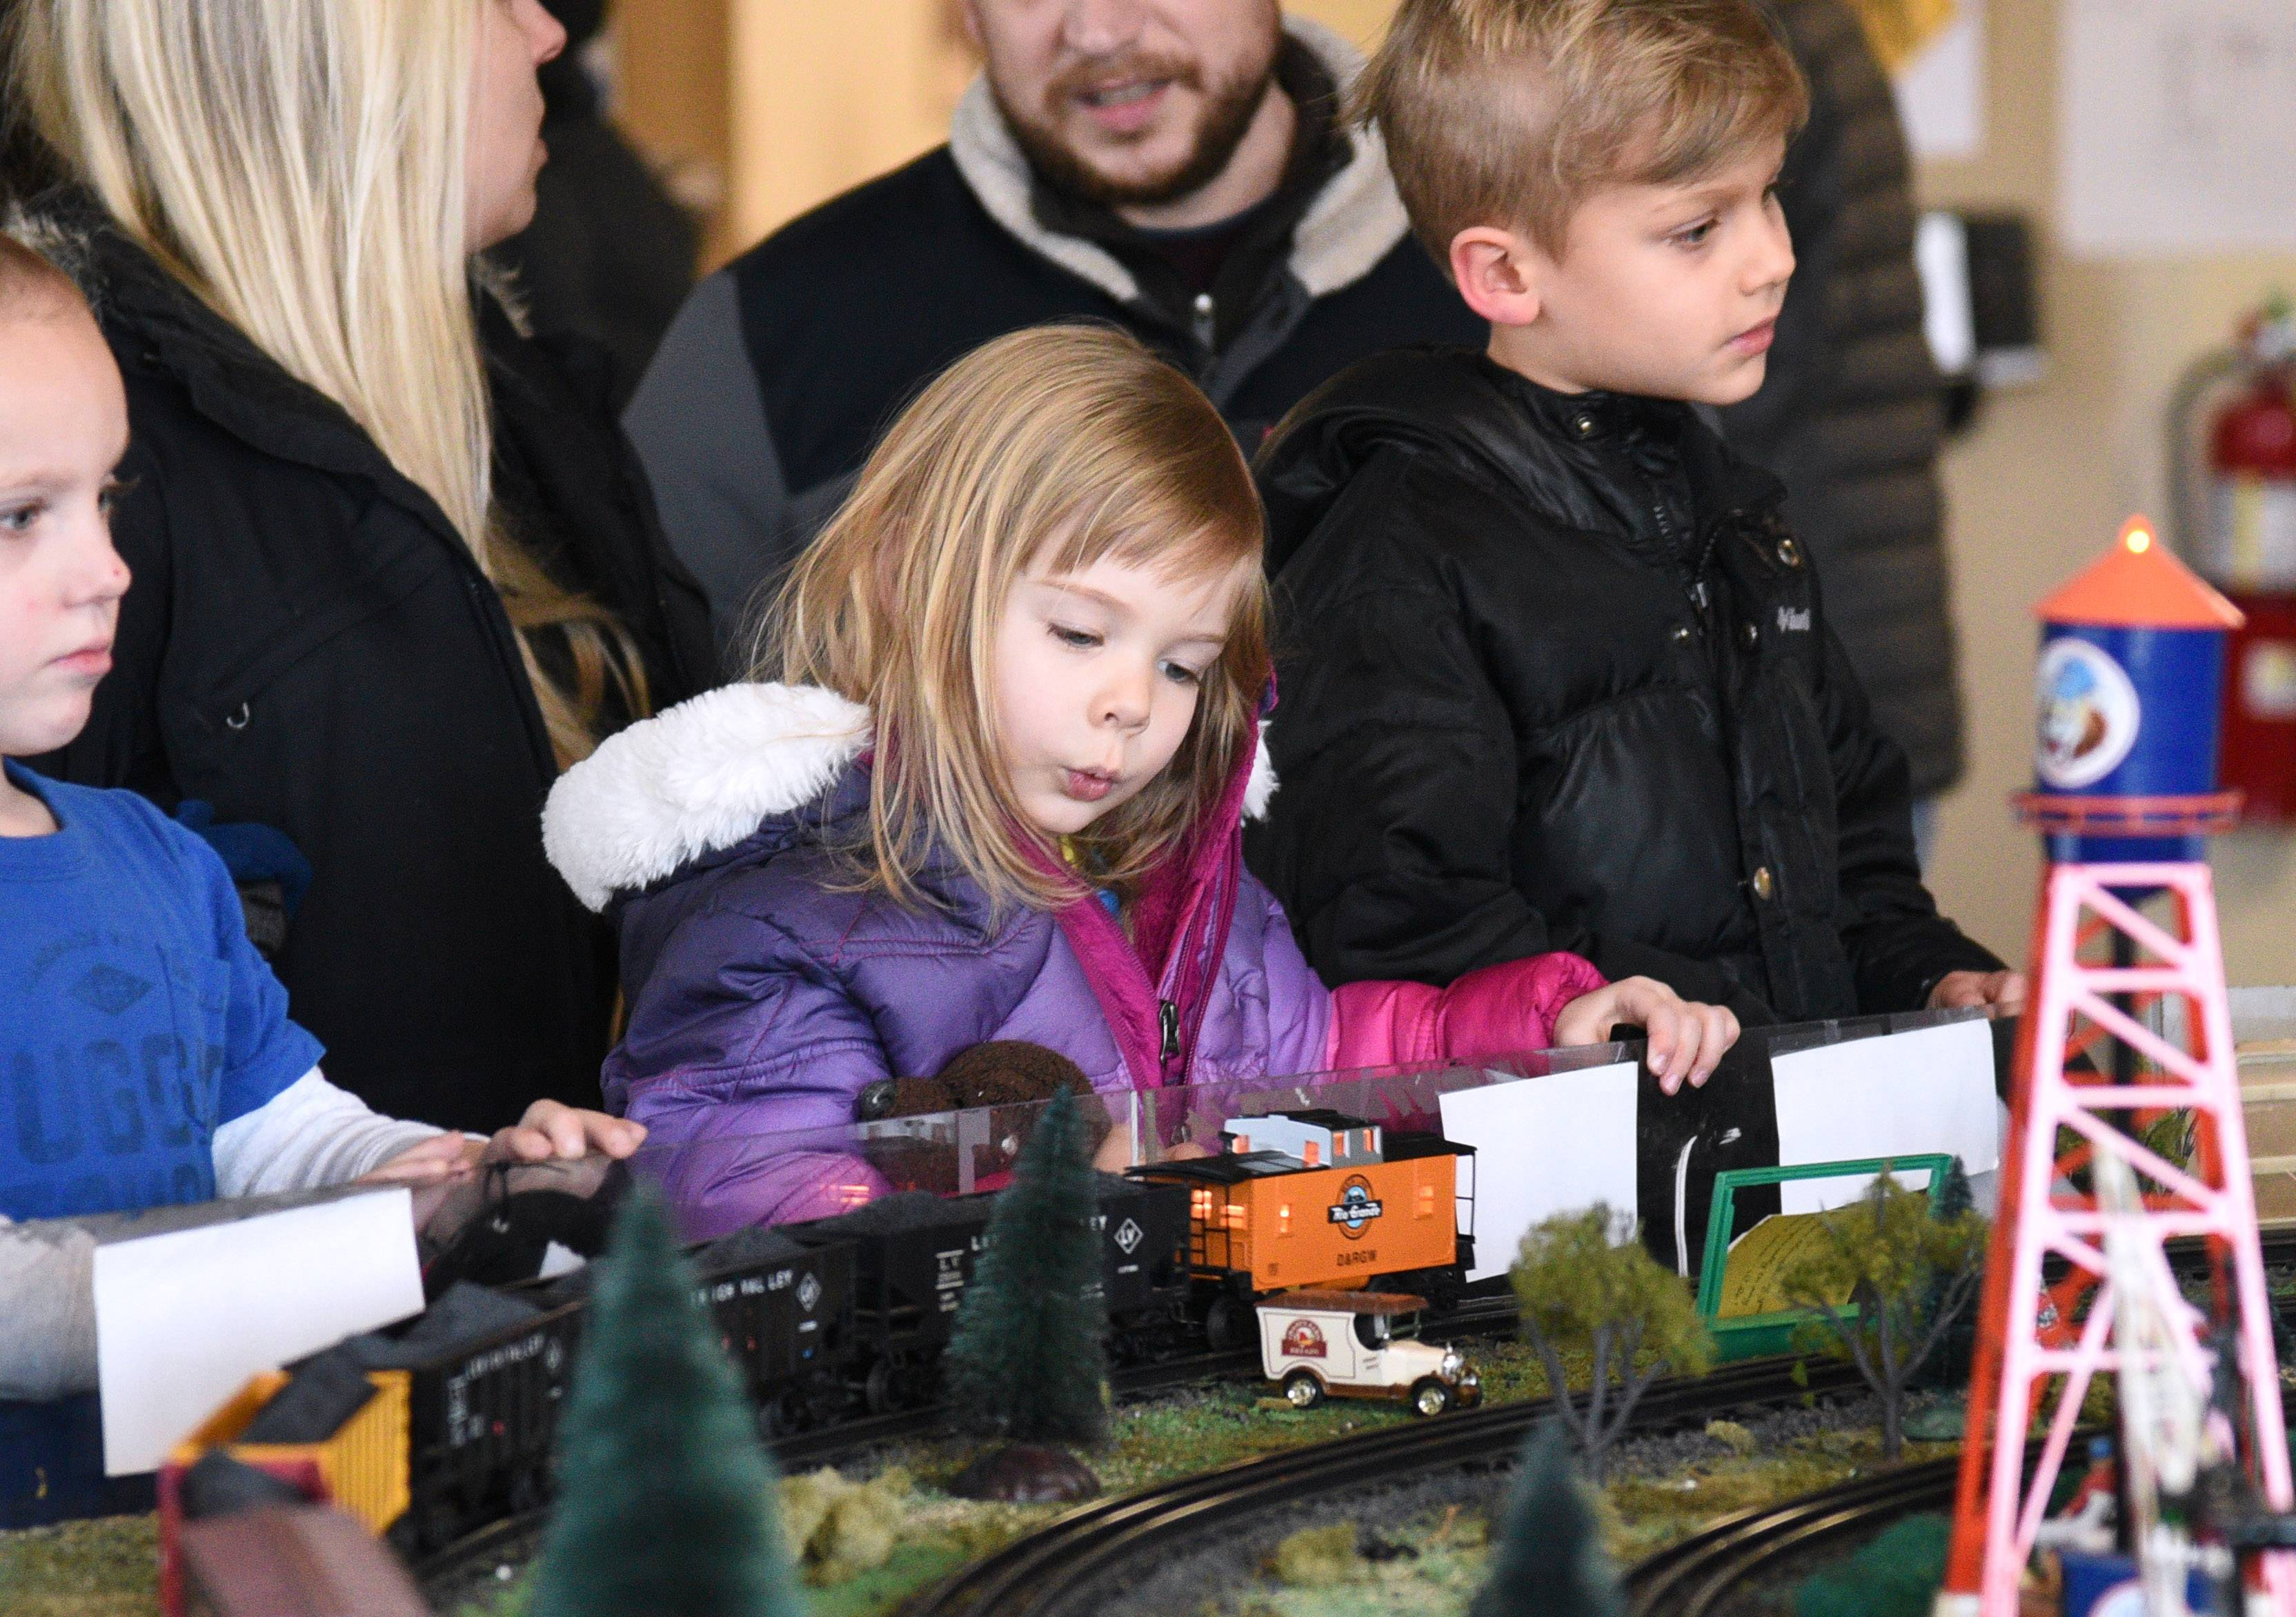 Maya Hurvitz, 3, of Libertyville, and Jackson Lasik, 4, of Lake Bluff, right, get a close look at the trains during the North Central 'O' Gaugers Model Railroad Club monthly run at the Fremont Public Library in Mundelein.